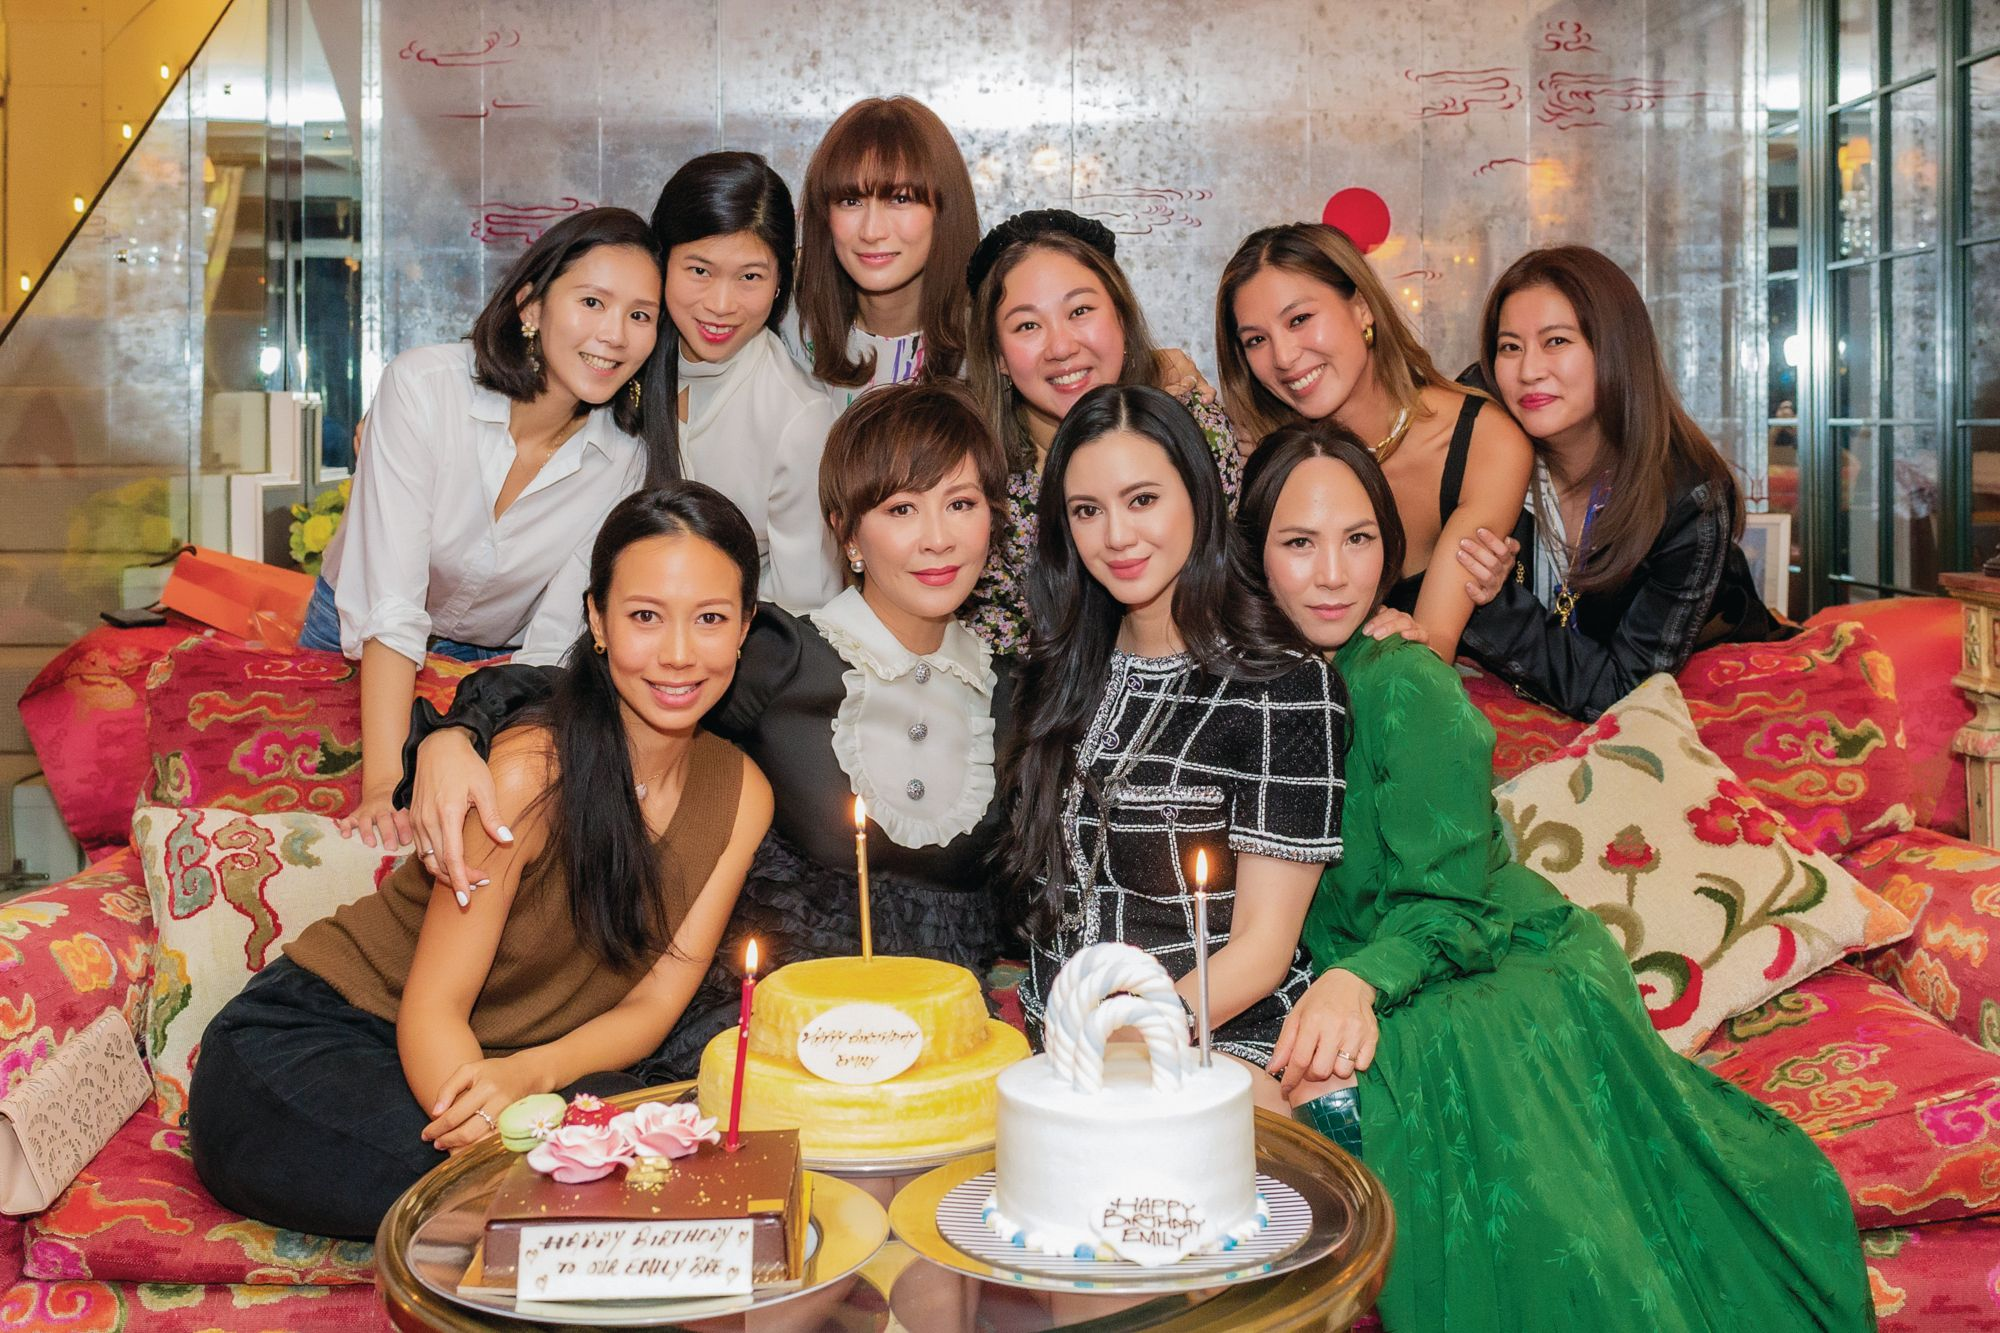 Emily Lam-Ho Celebrates Her Birthday In Style With Friends And Family